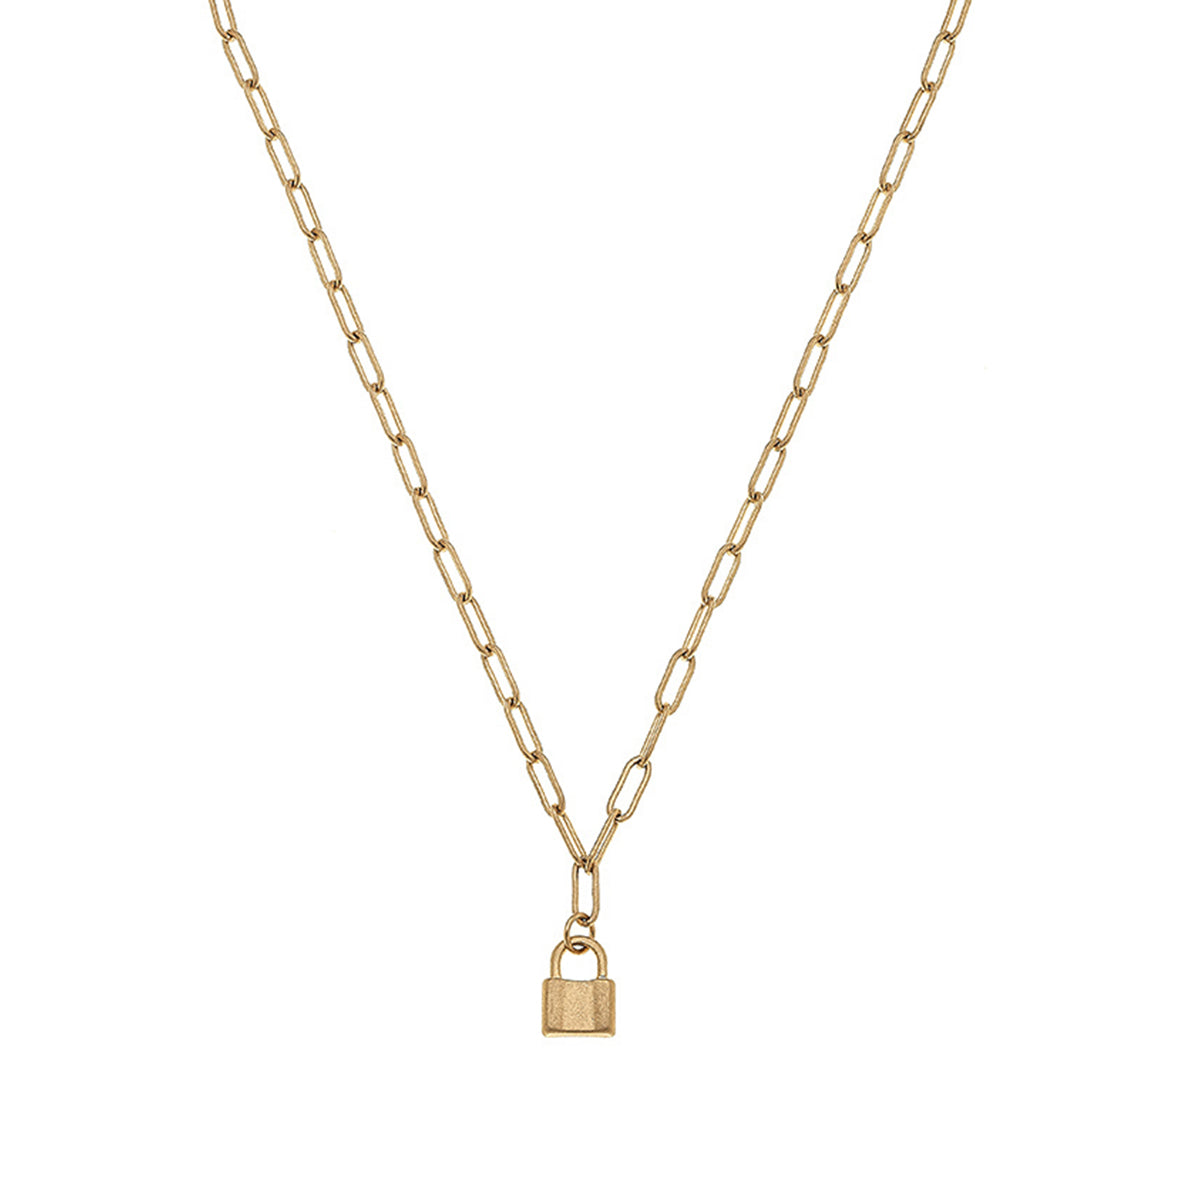 Genesis Mini Padlock Charm Necklace in Worn Gold